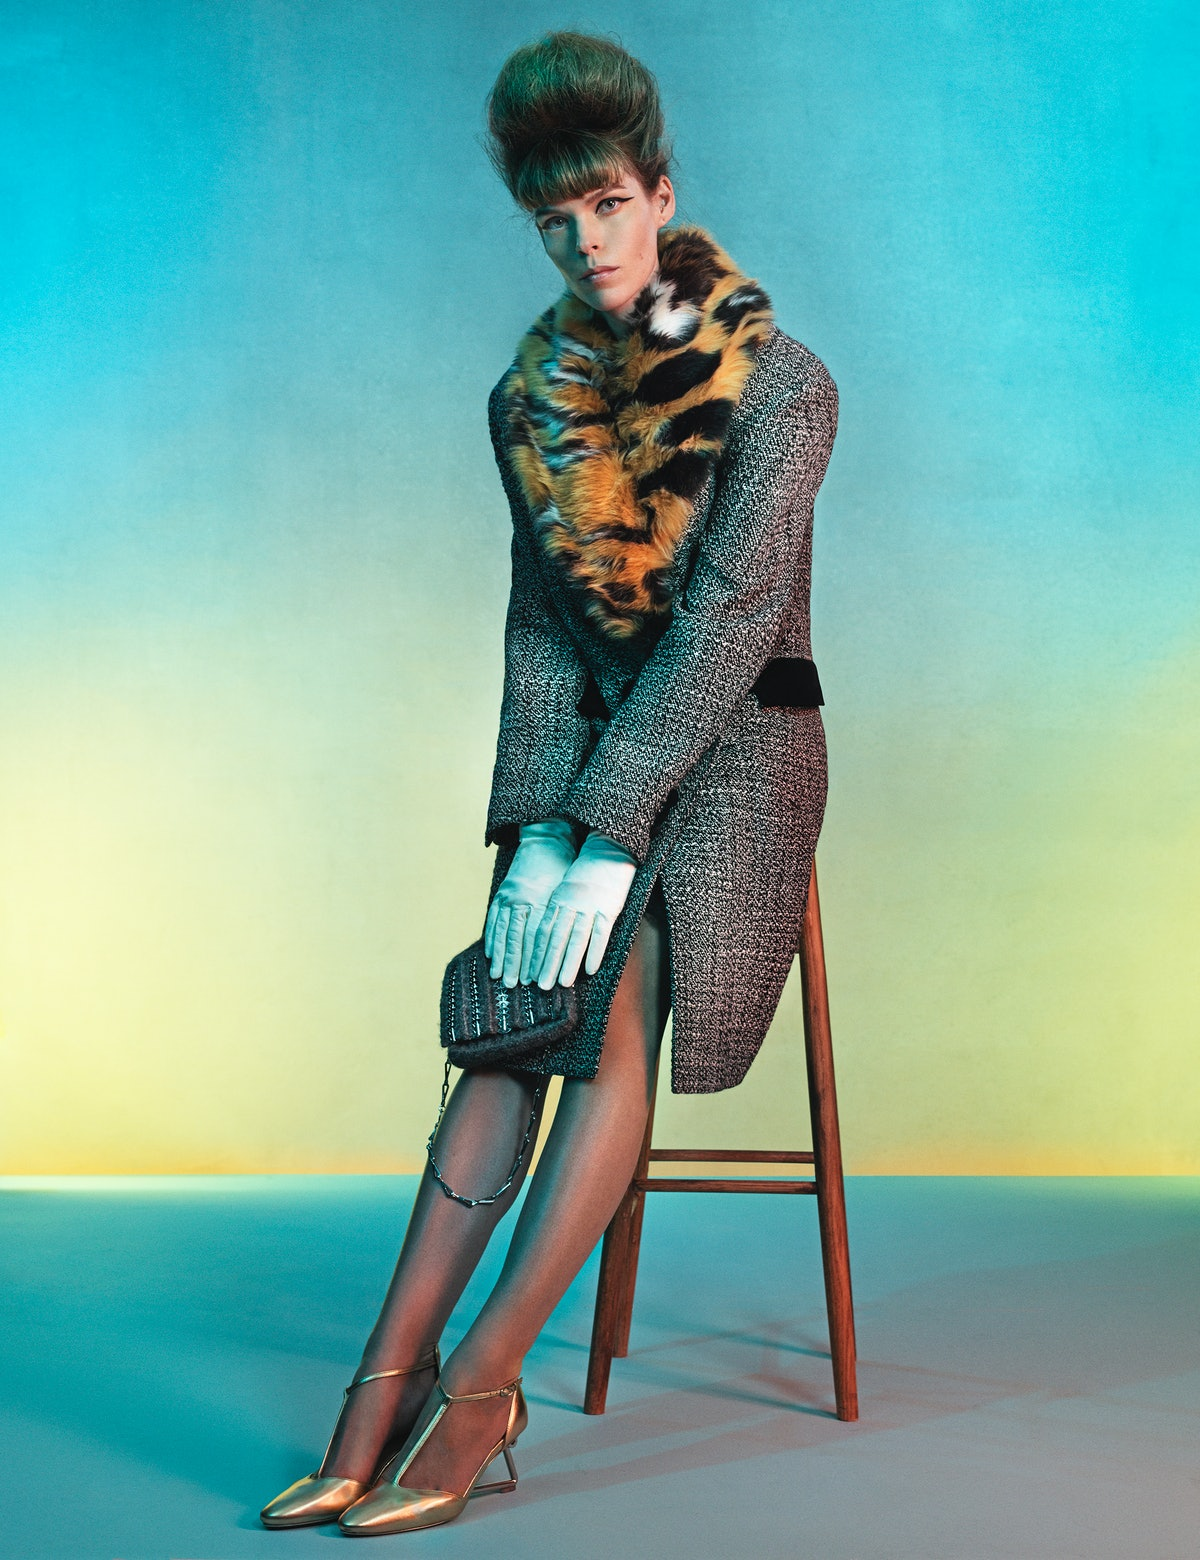 Meghan Collison wears a Paco Rabanne coat with detachable collar, bag, and shoes; stylist's own glov...